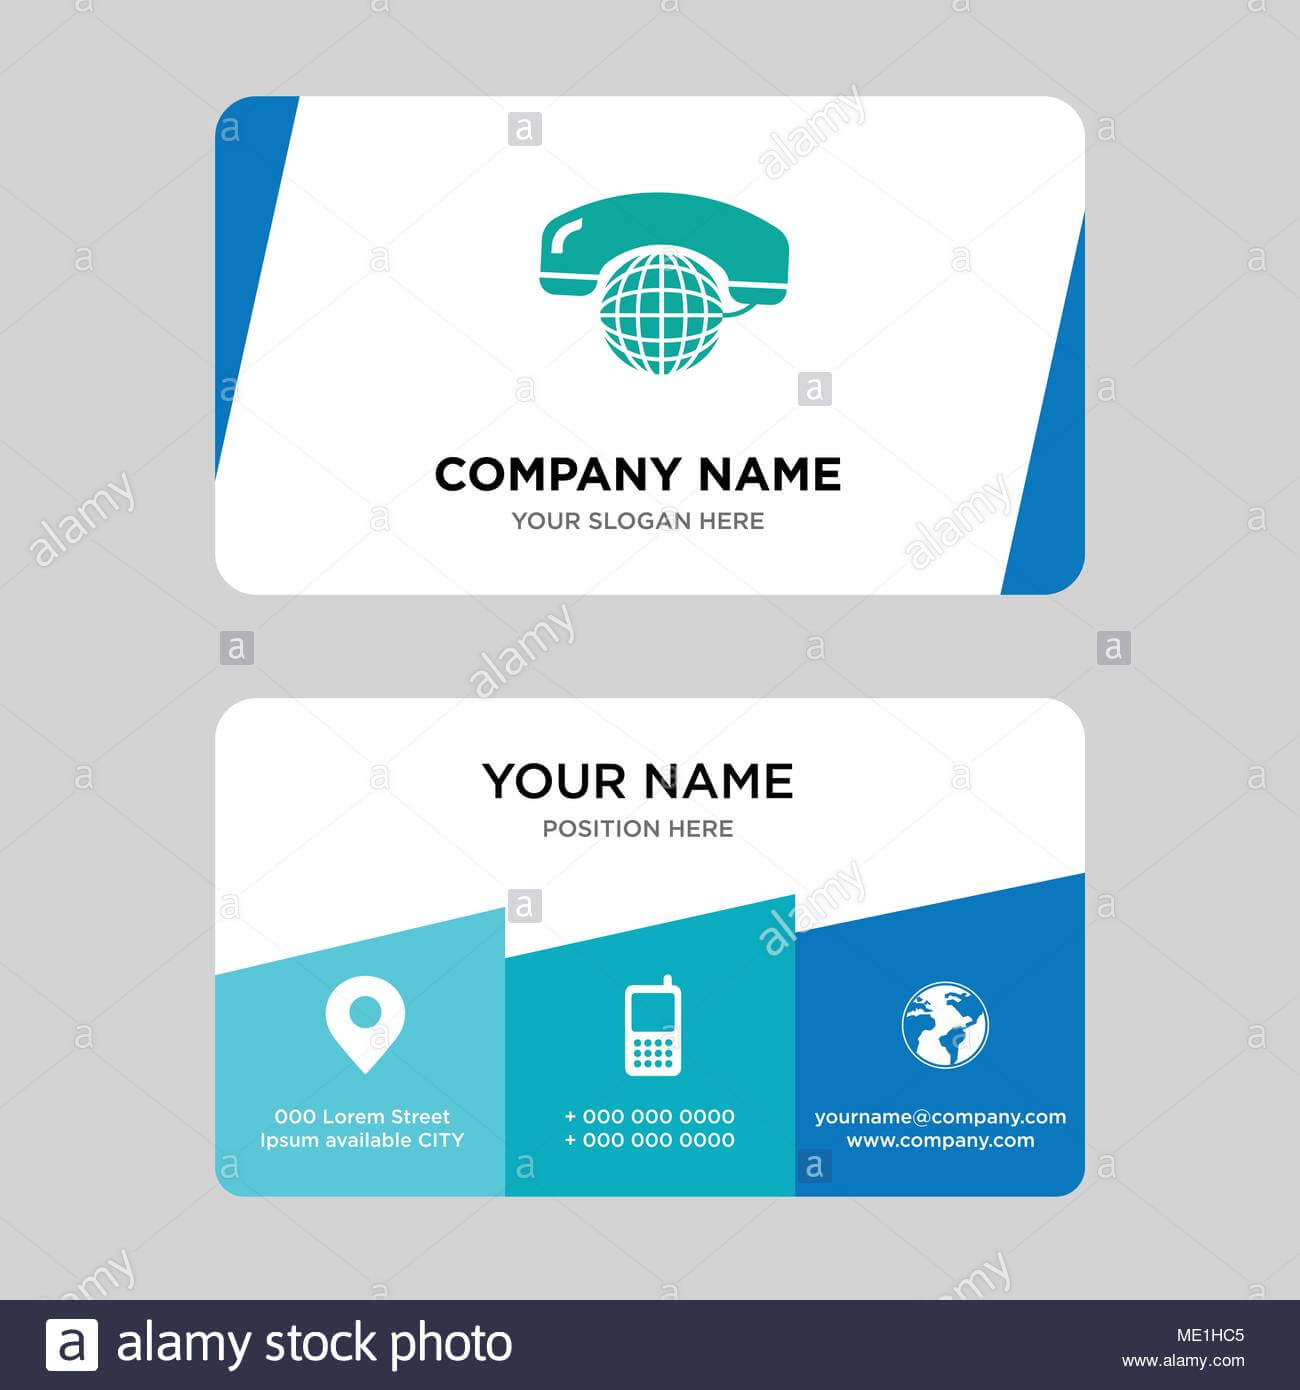 International Calling Service Business Card Design Template With Regard To Call Card Templates